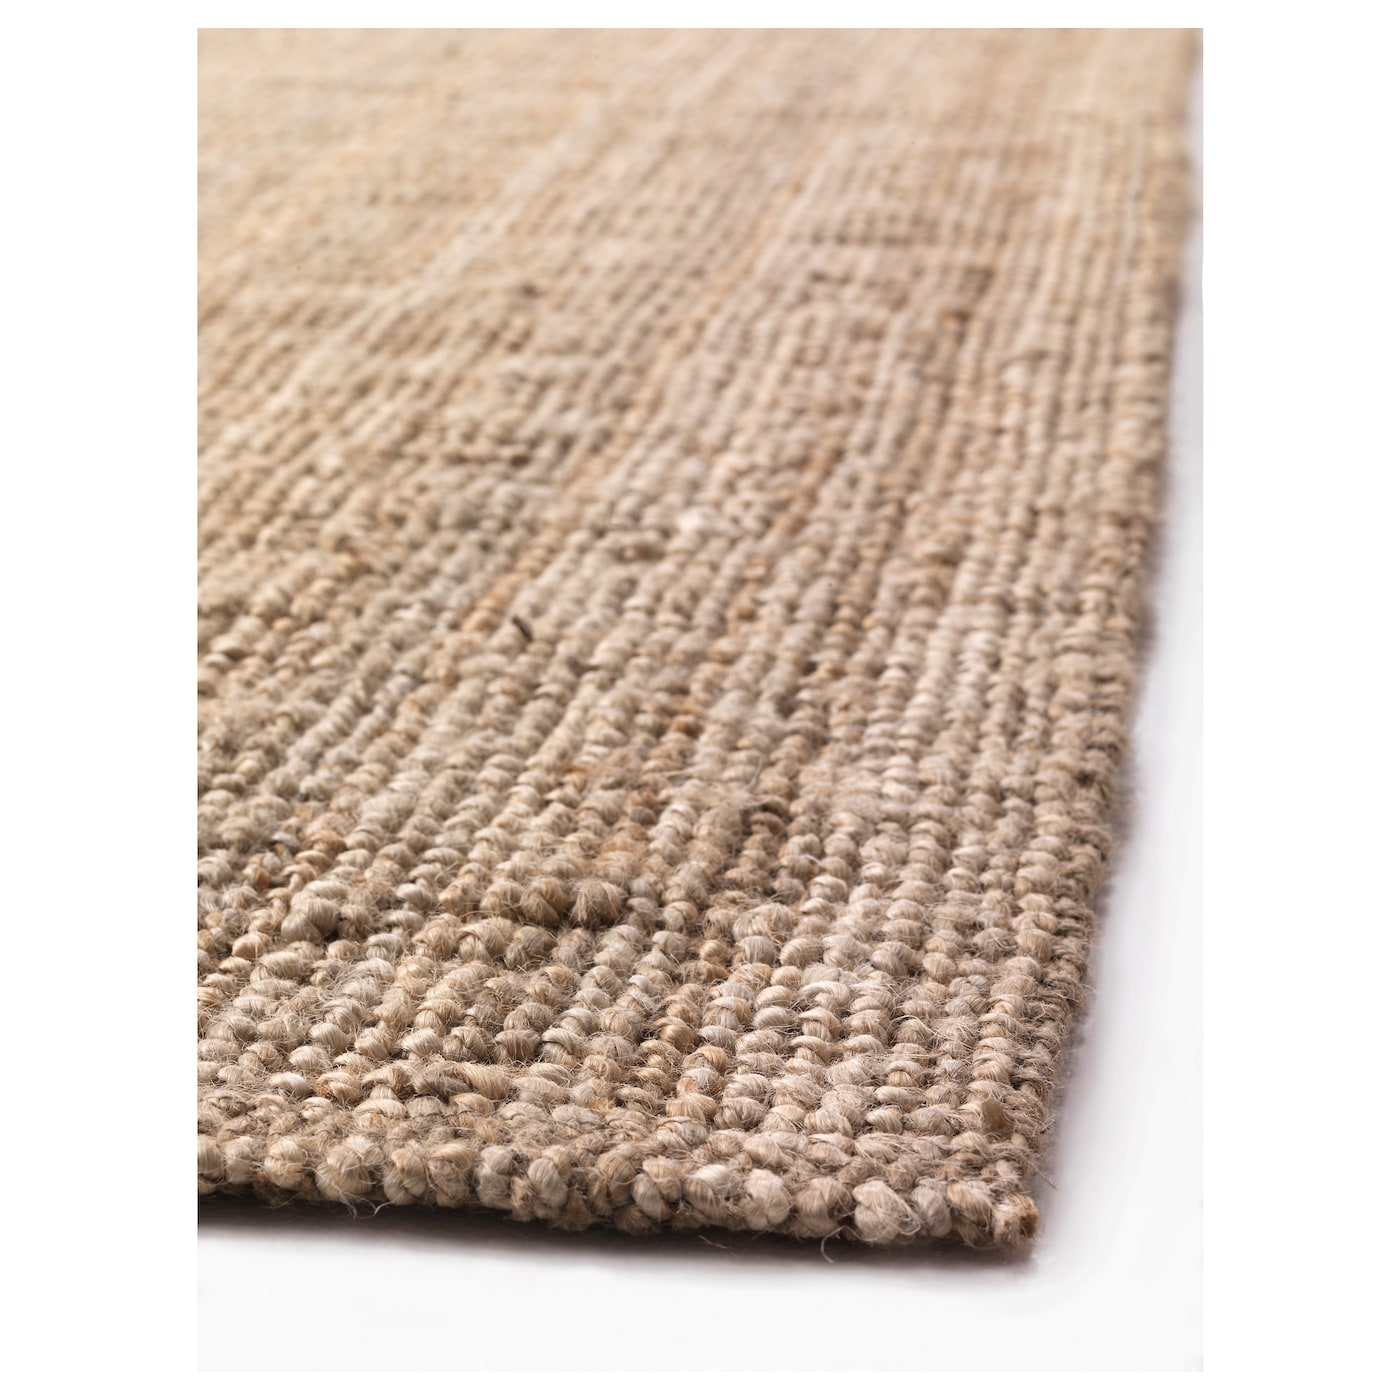 ikea design wool ideas havbro innovative rugs lovely rug modern of trendy beautiful